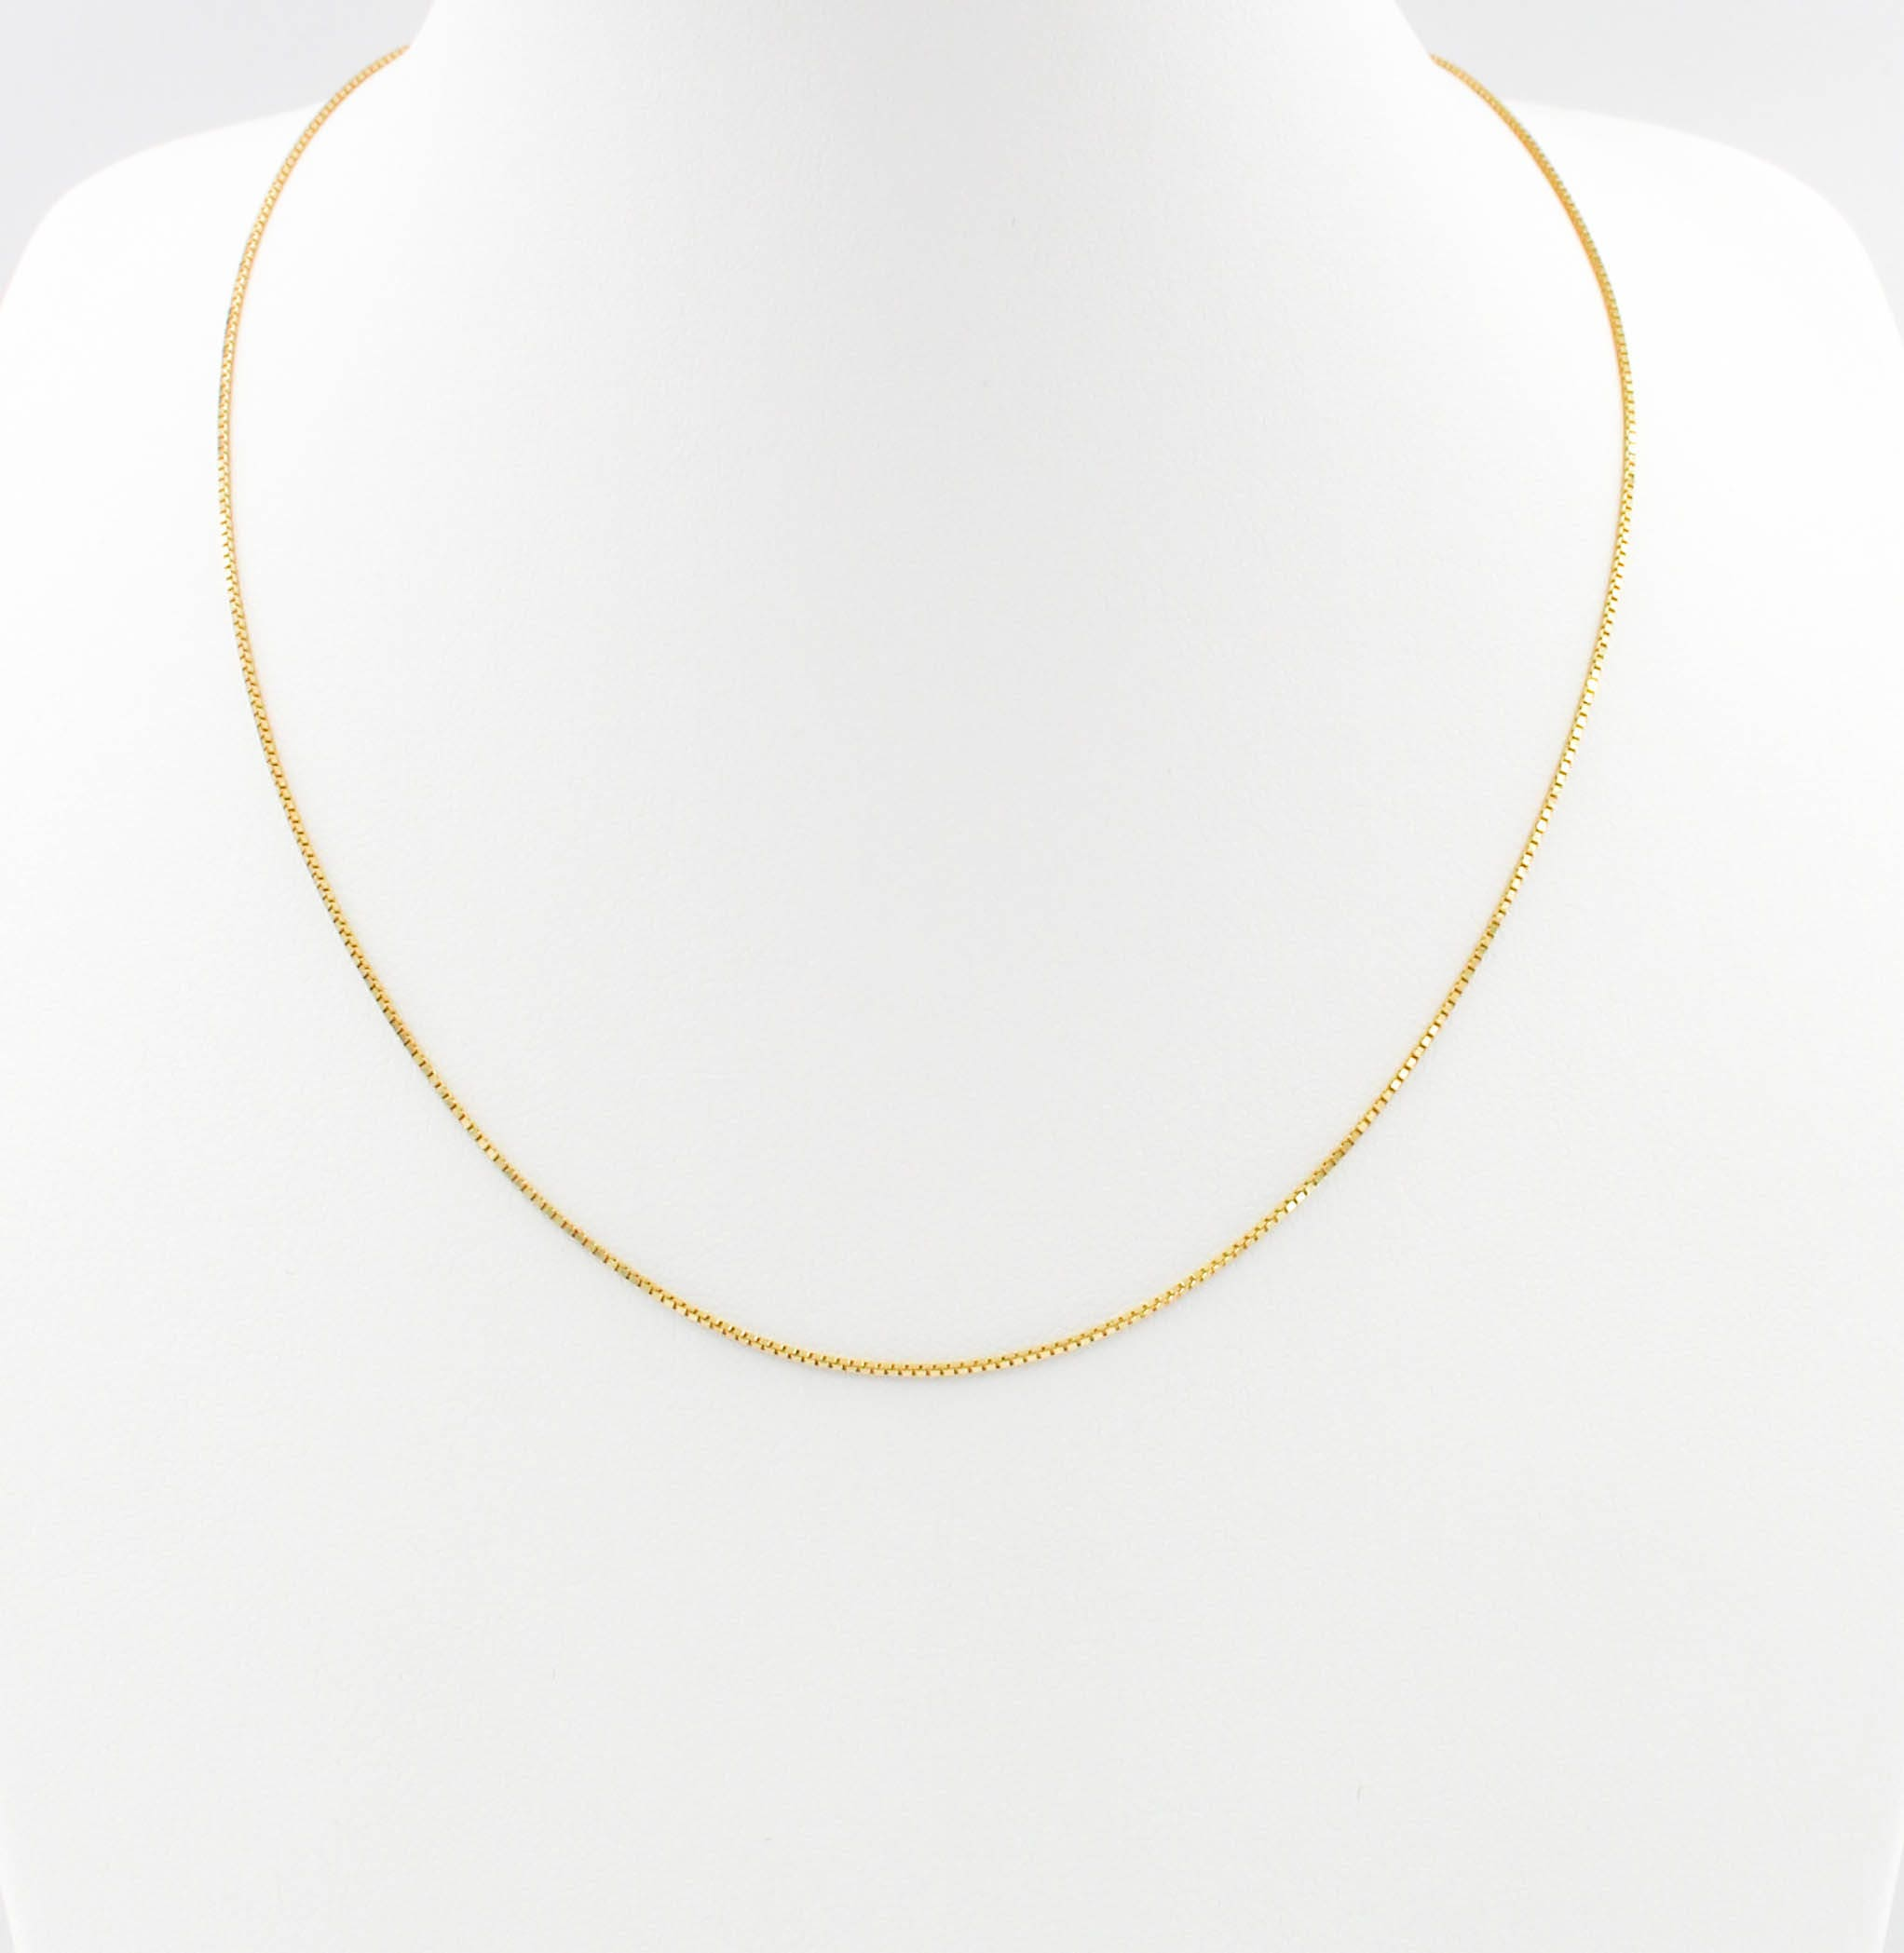 twisted row rondels chain jewelry yellow necklace gold chains products